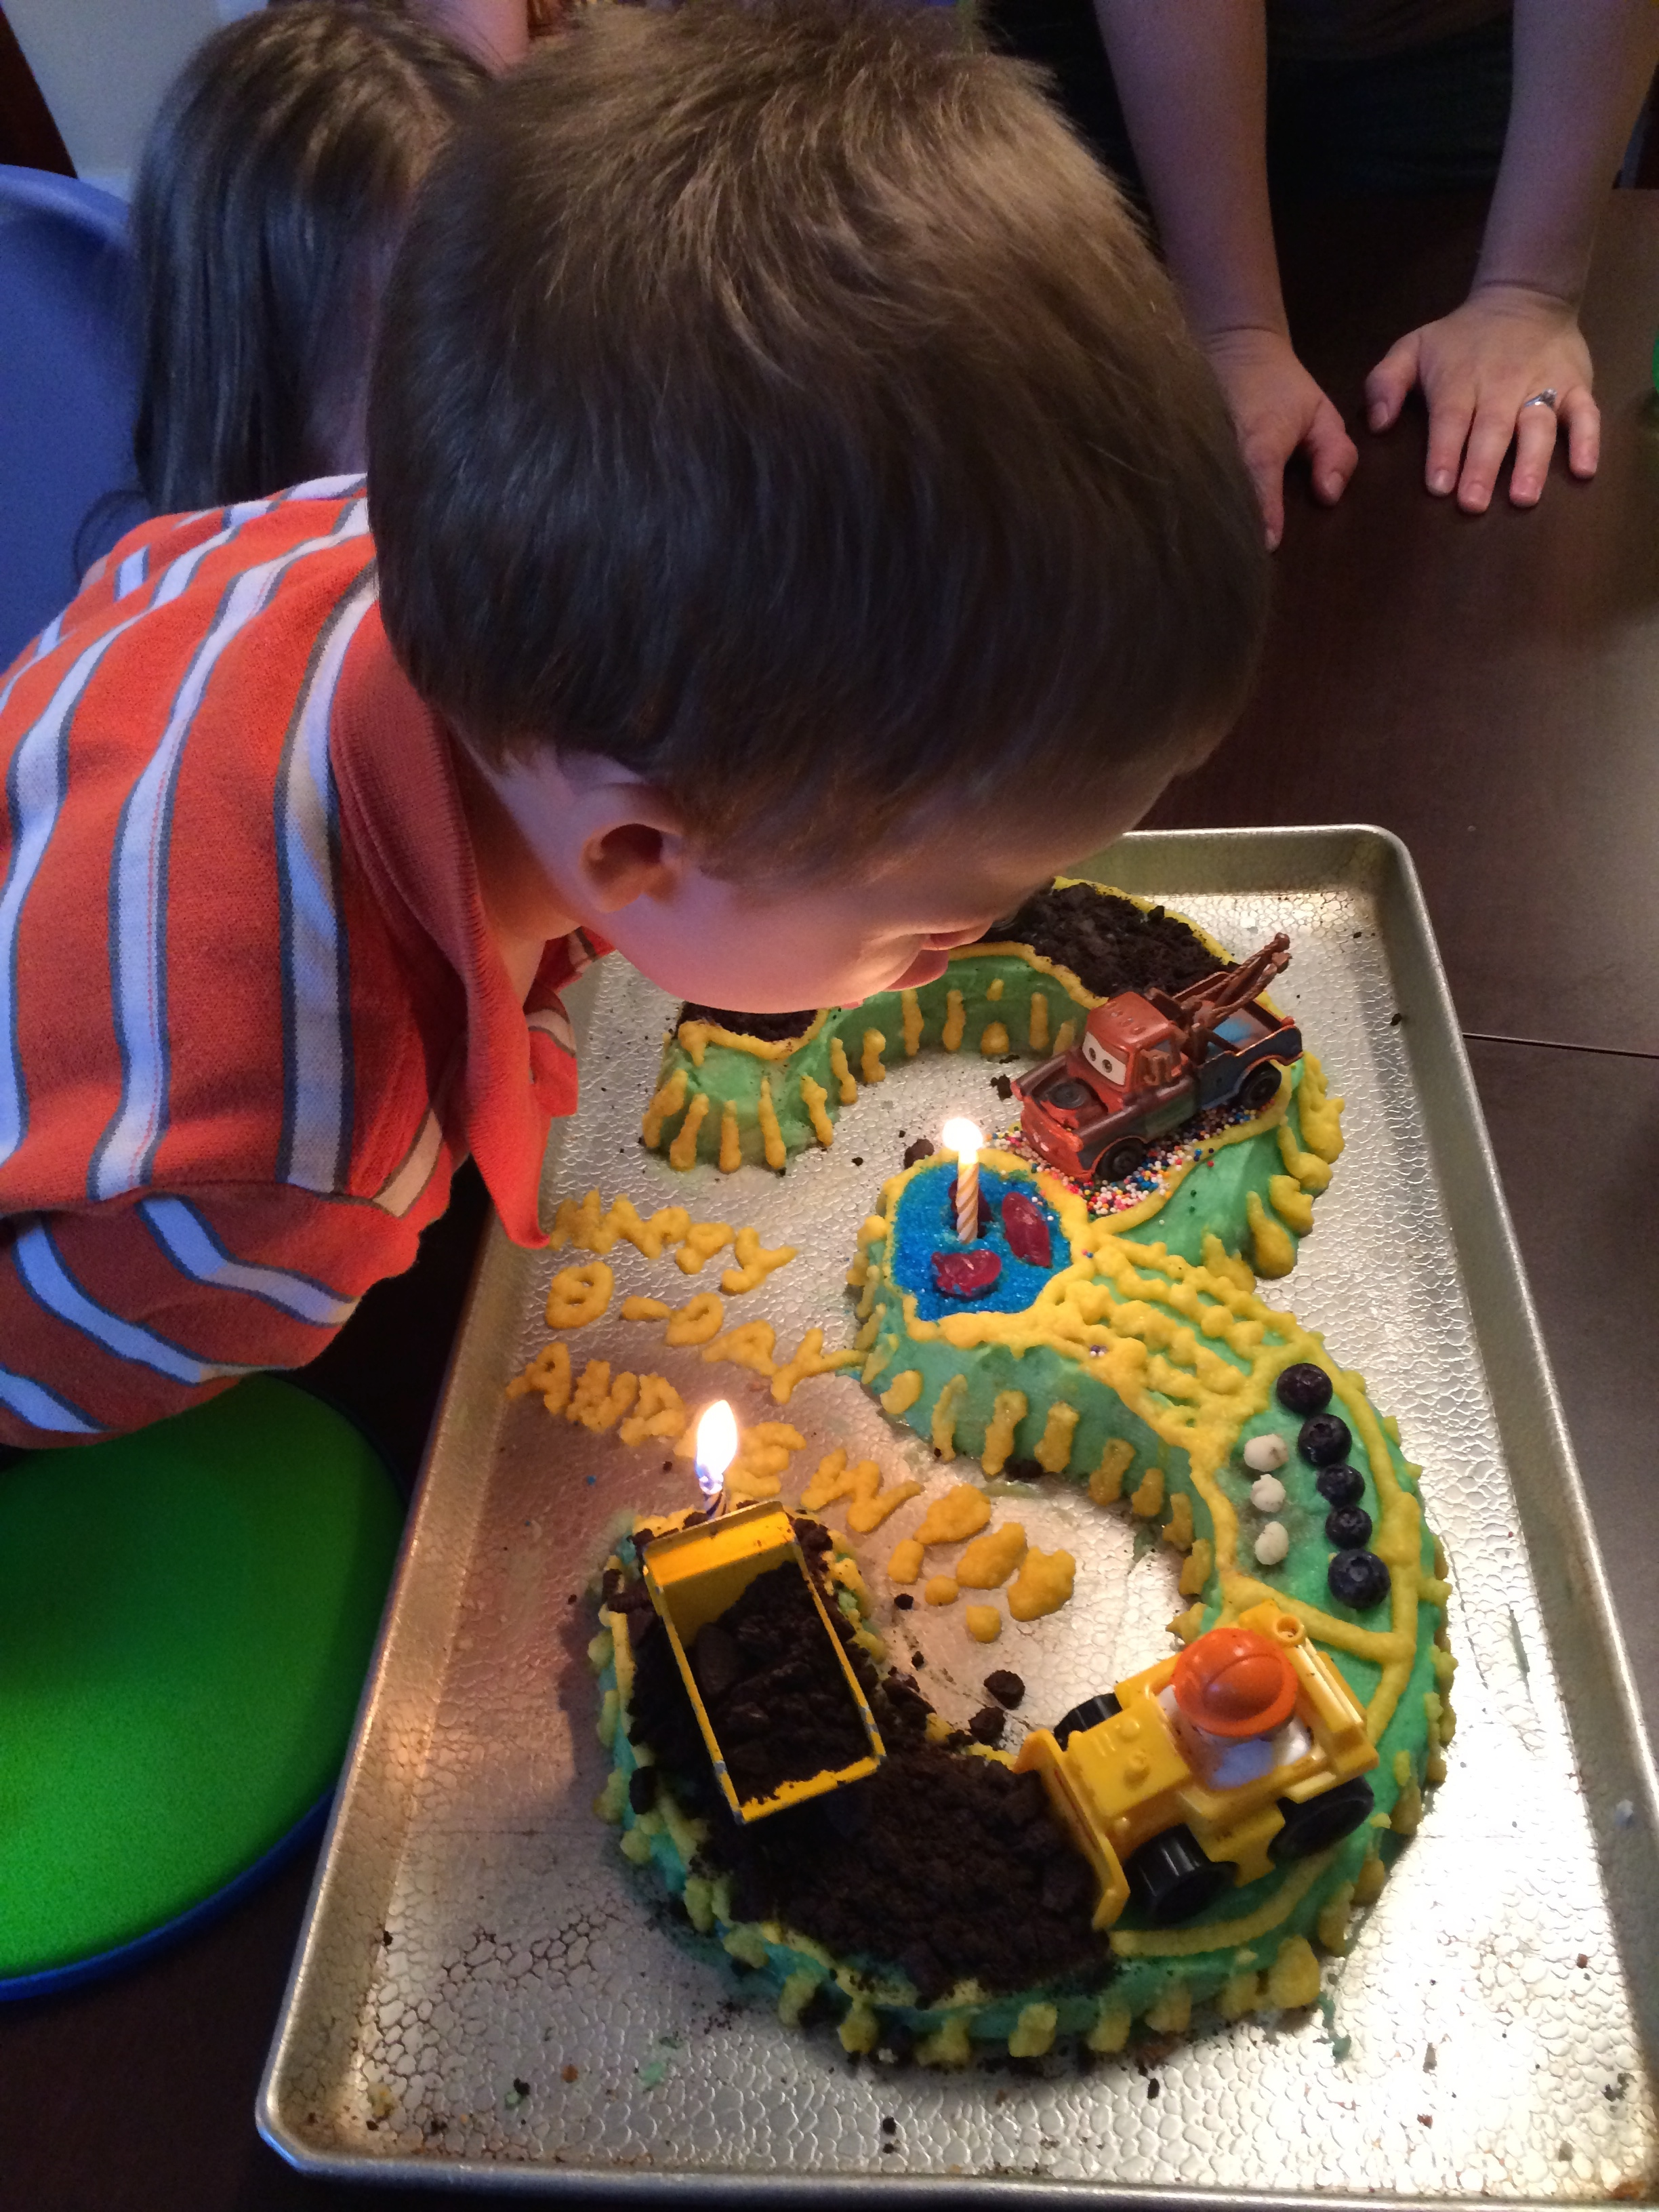 We celebrated his birthday early since it fell on a day that was during our trip and didn't want to miss it.